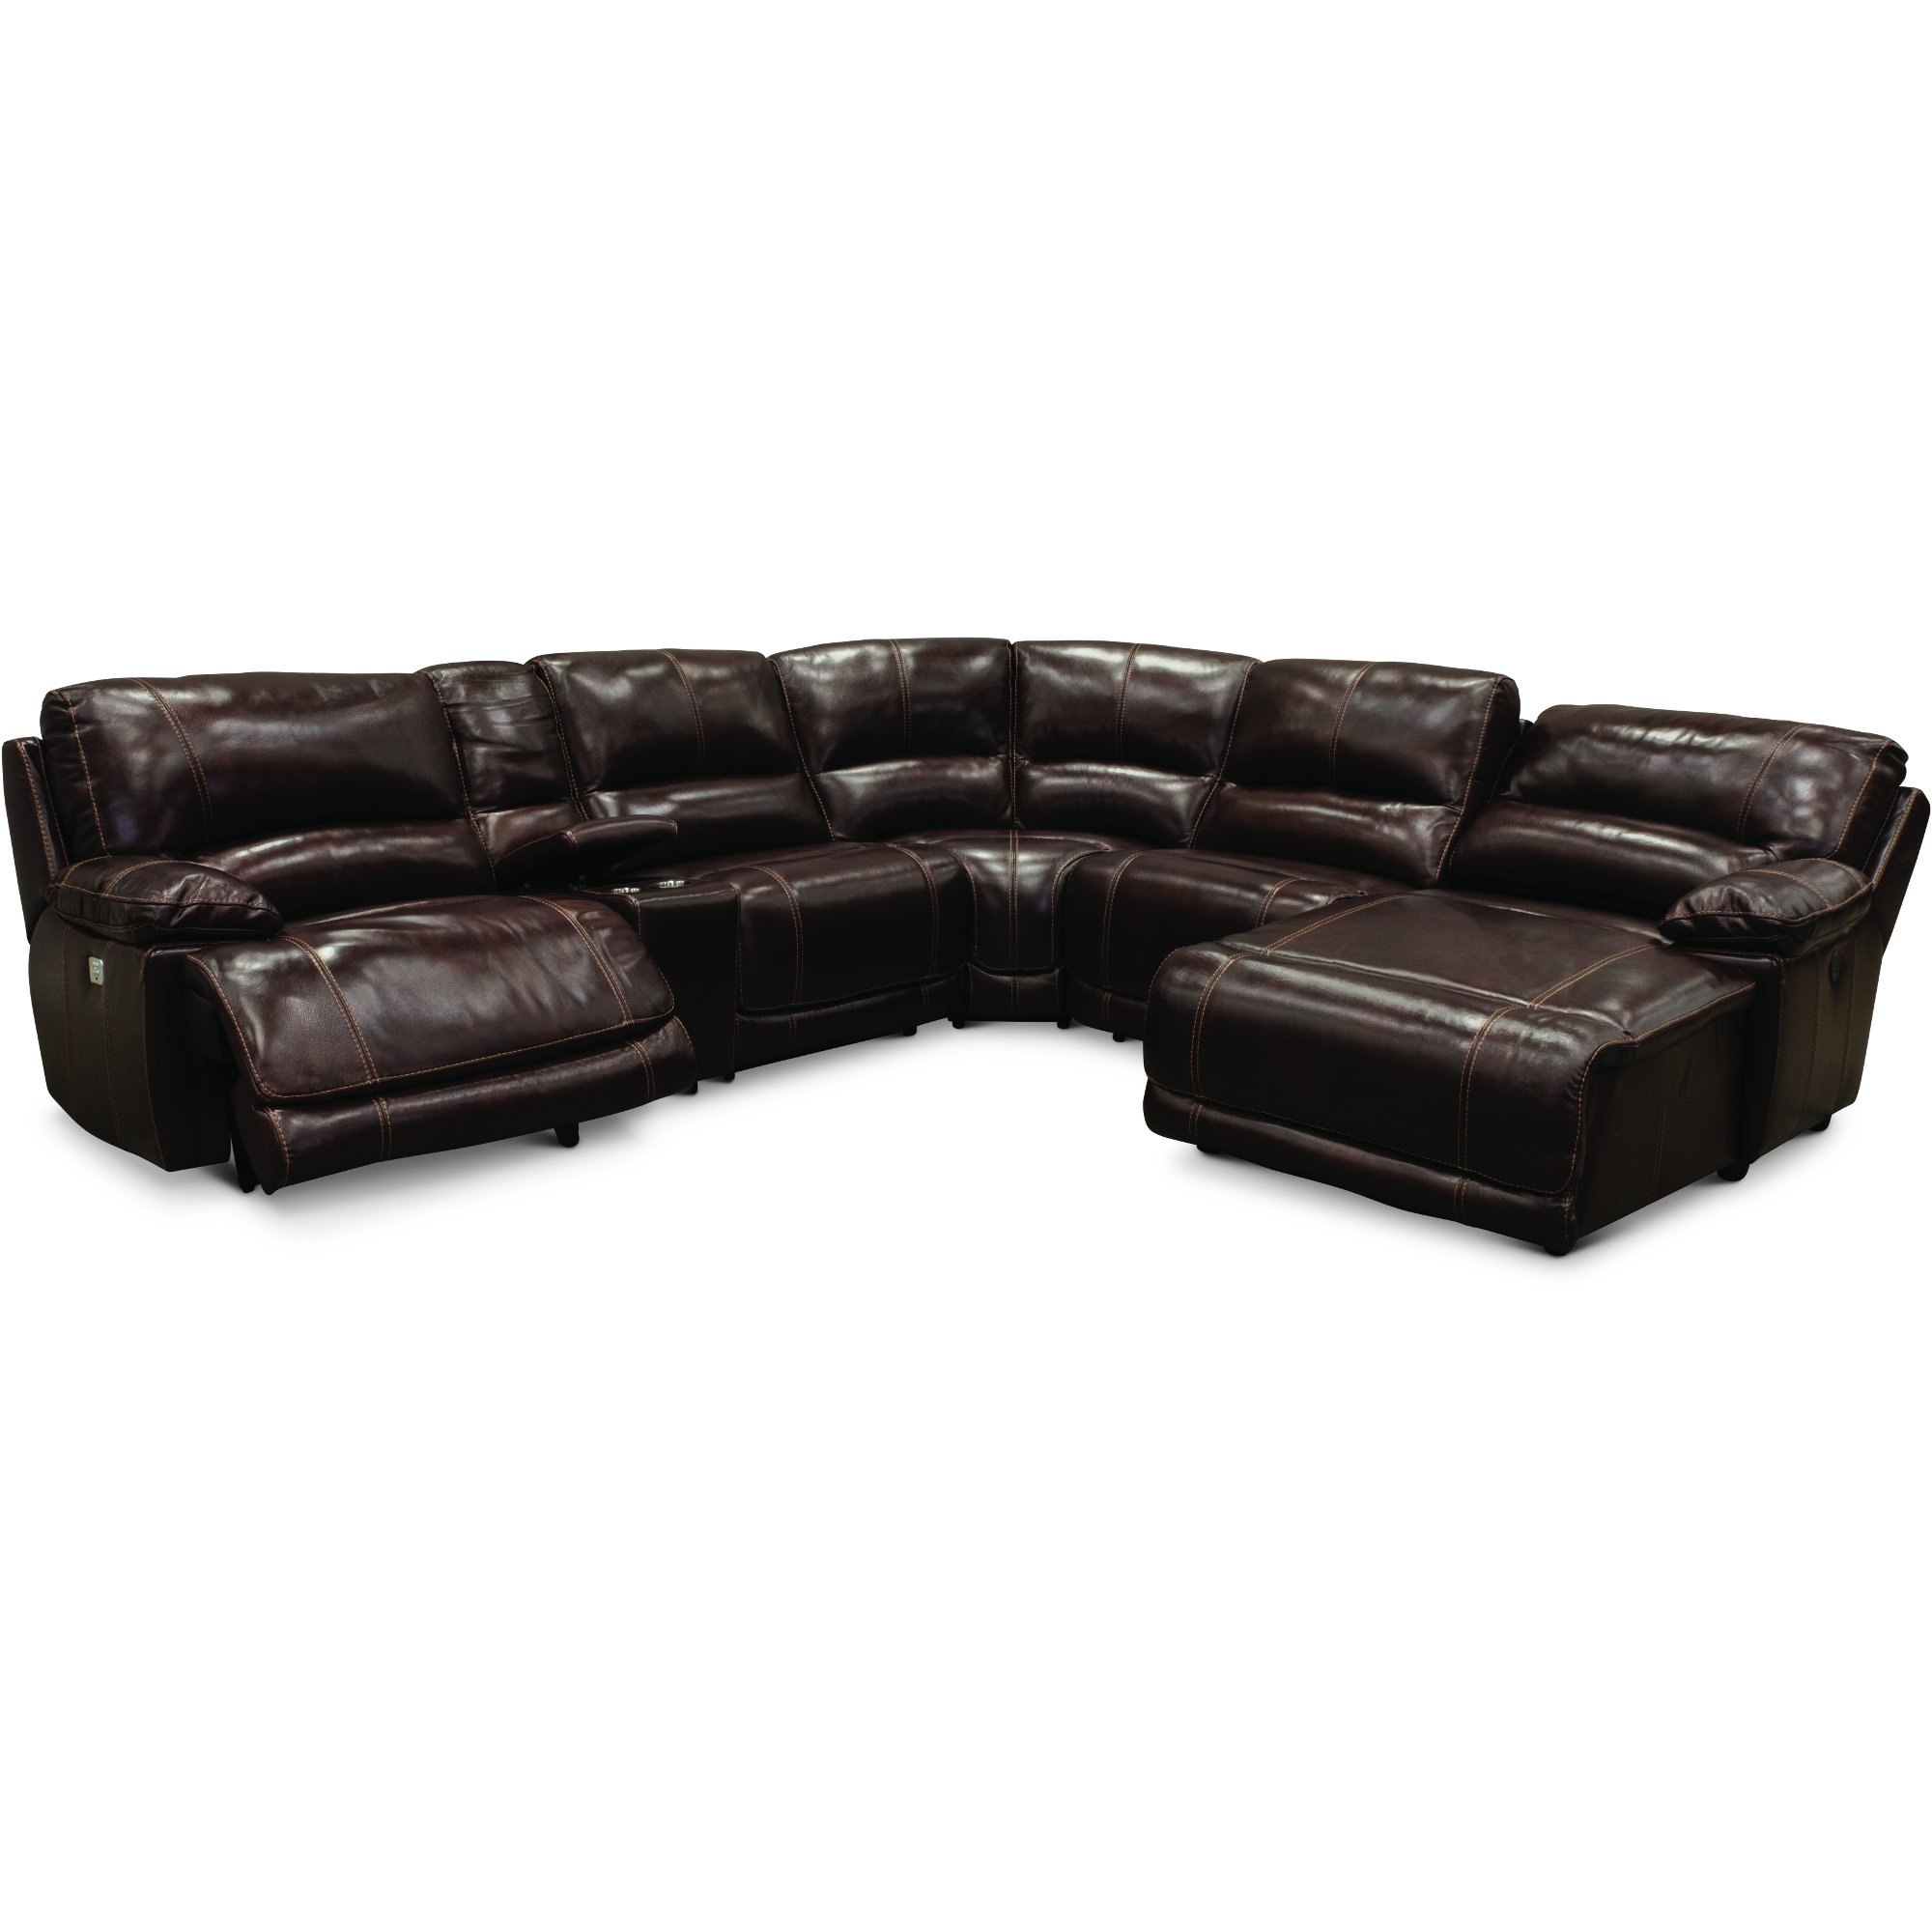 Burgundy 6 Piece Power Reclining Sectional Sofa – Brant | Rc Willey Pertaining To Jackson 6 Piece Power Reclining Sectionals (Image 7 of 25)